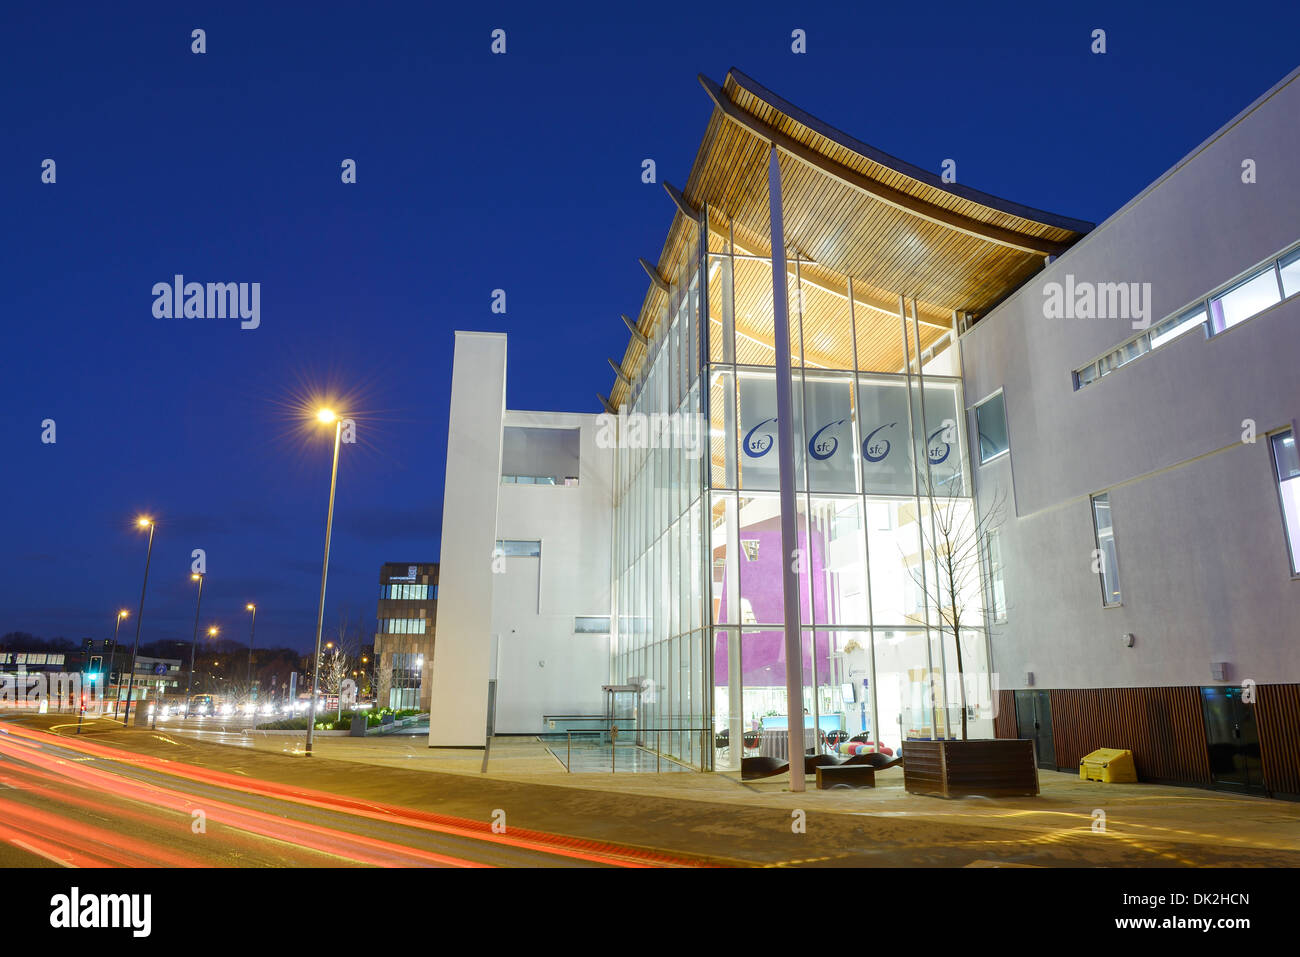 The City of Stoke on Trent Sixth Form College - Stock Image